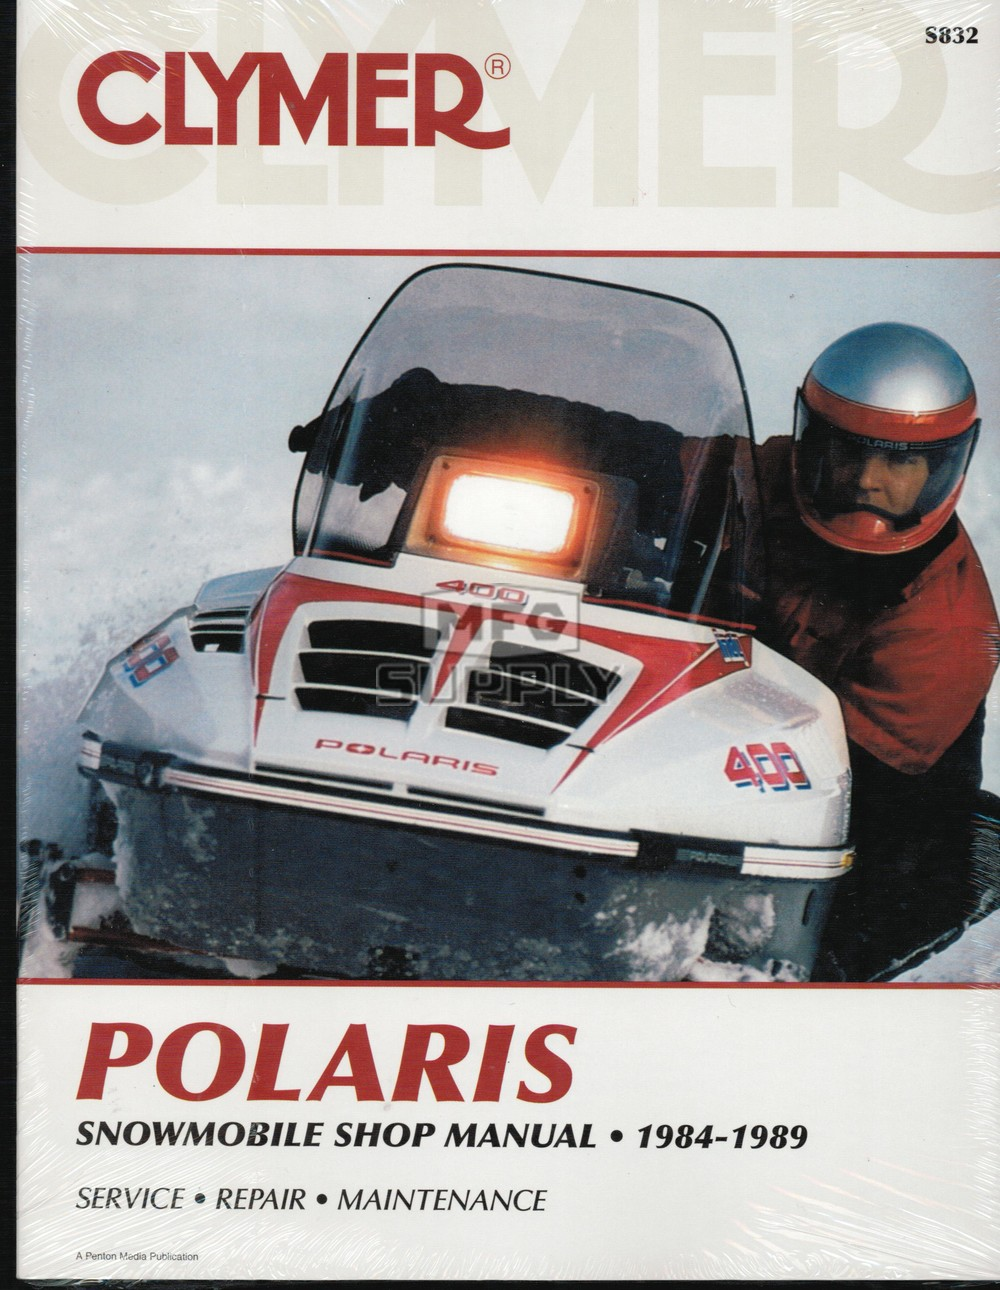 CS832 - 84-89 Polaris Snowmobile Shop Manual